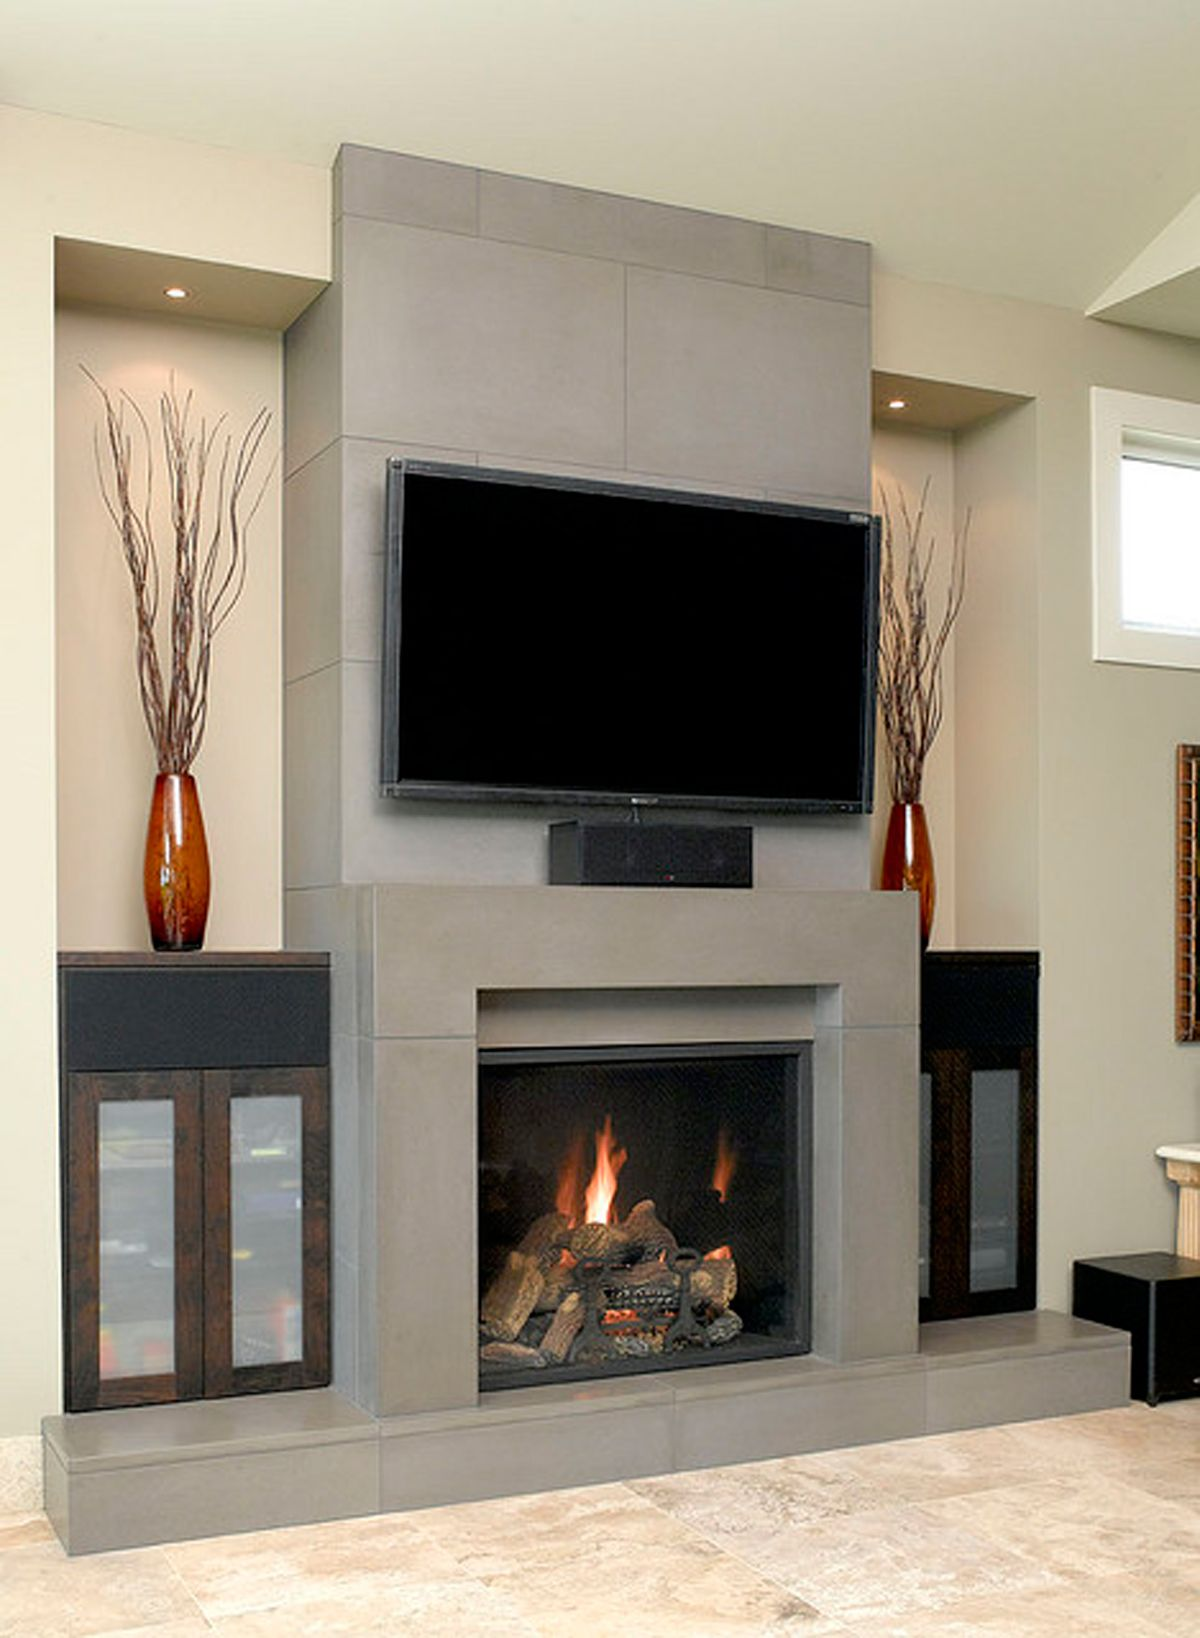 Fireplace Wall Designs plushemisphere fireplace wall decorating ideas Fireplaces Designs Fireplace Designs One Of 5 Total Pics Contemporary Gas Fireplace